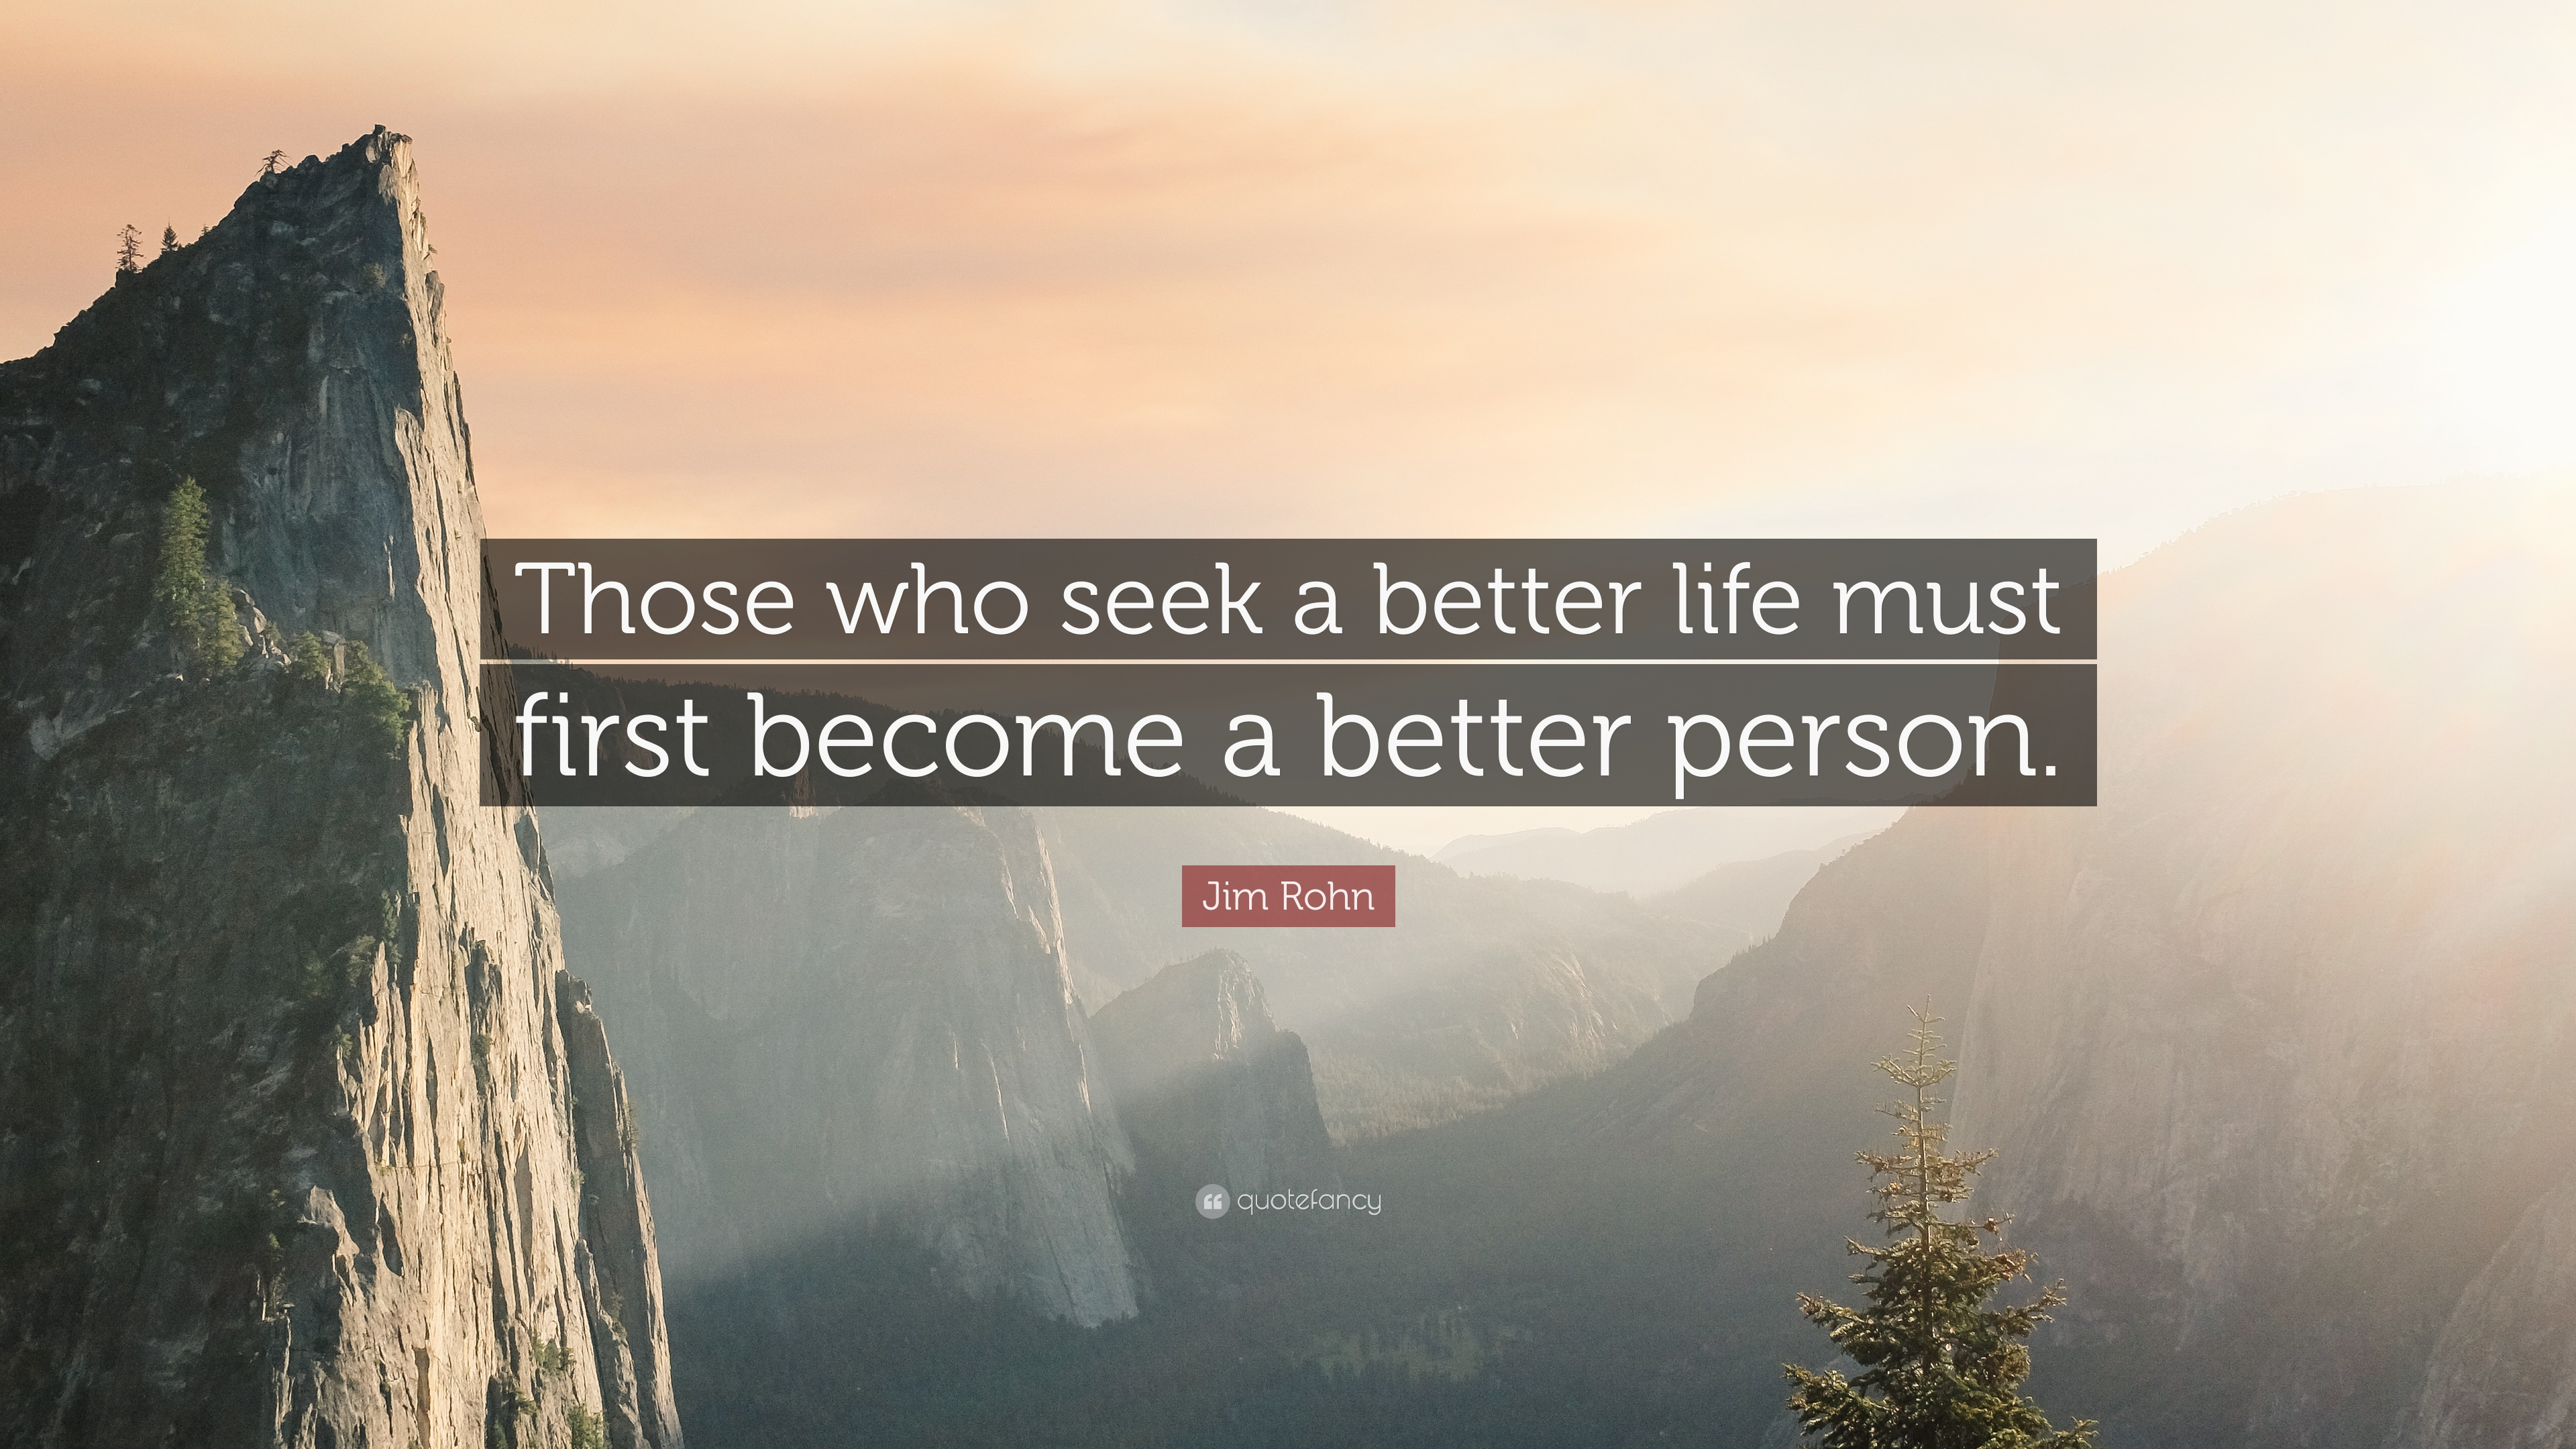 Jim Rohn Quote Those Who Seek A Better Life Must First Become A